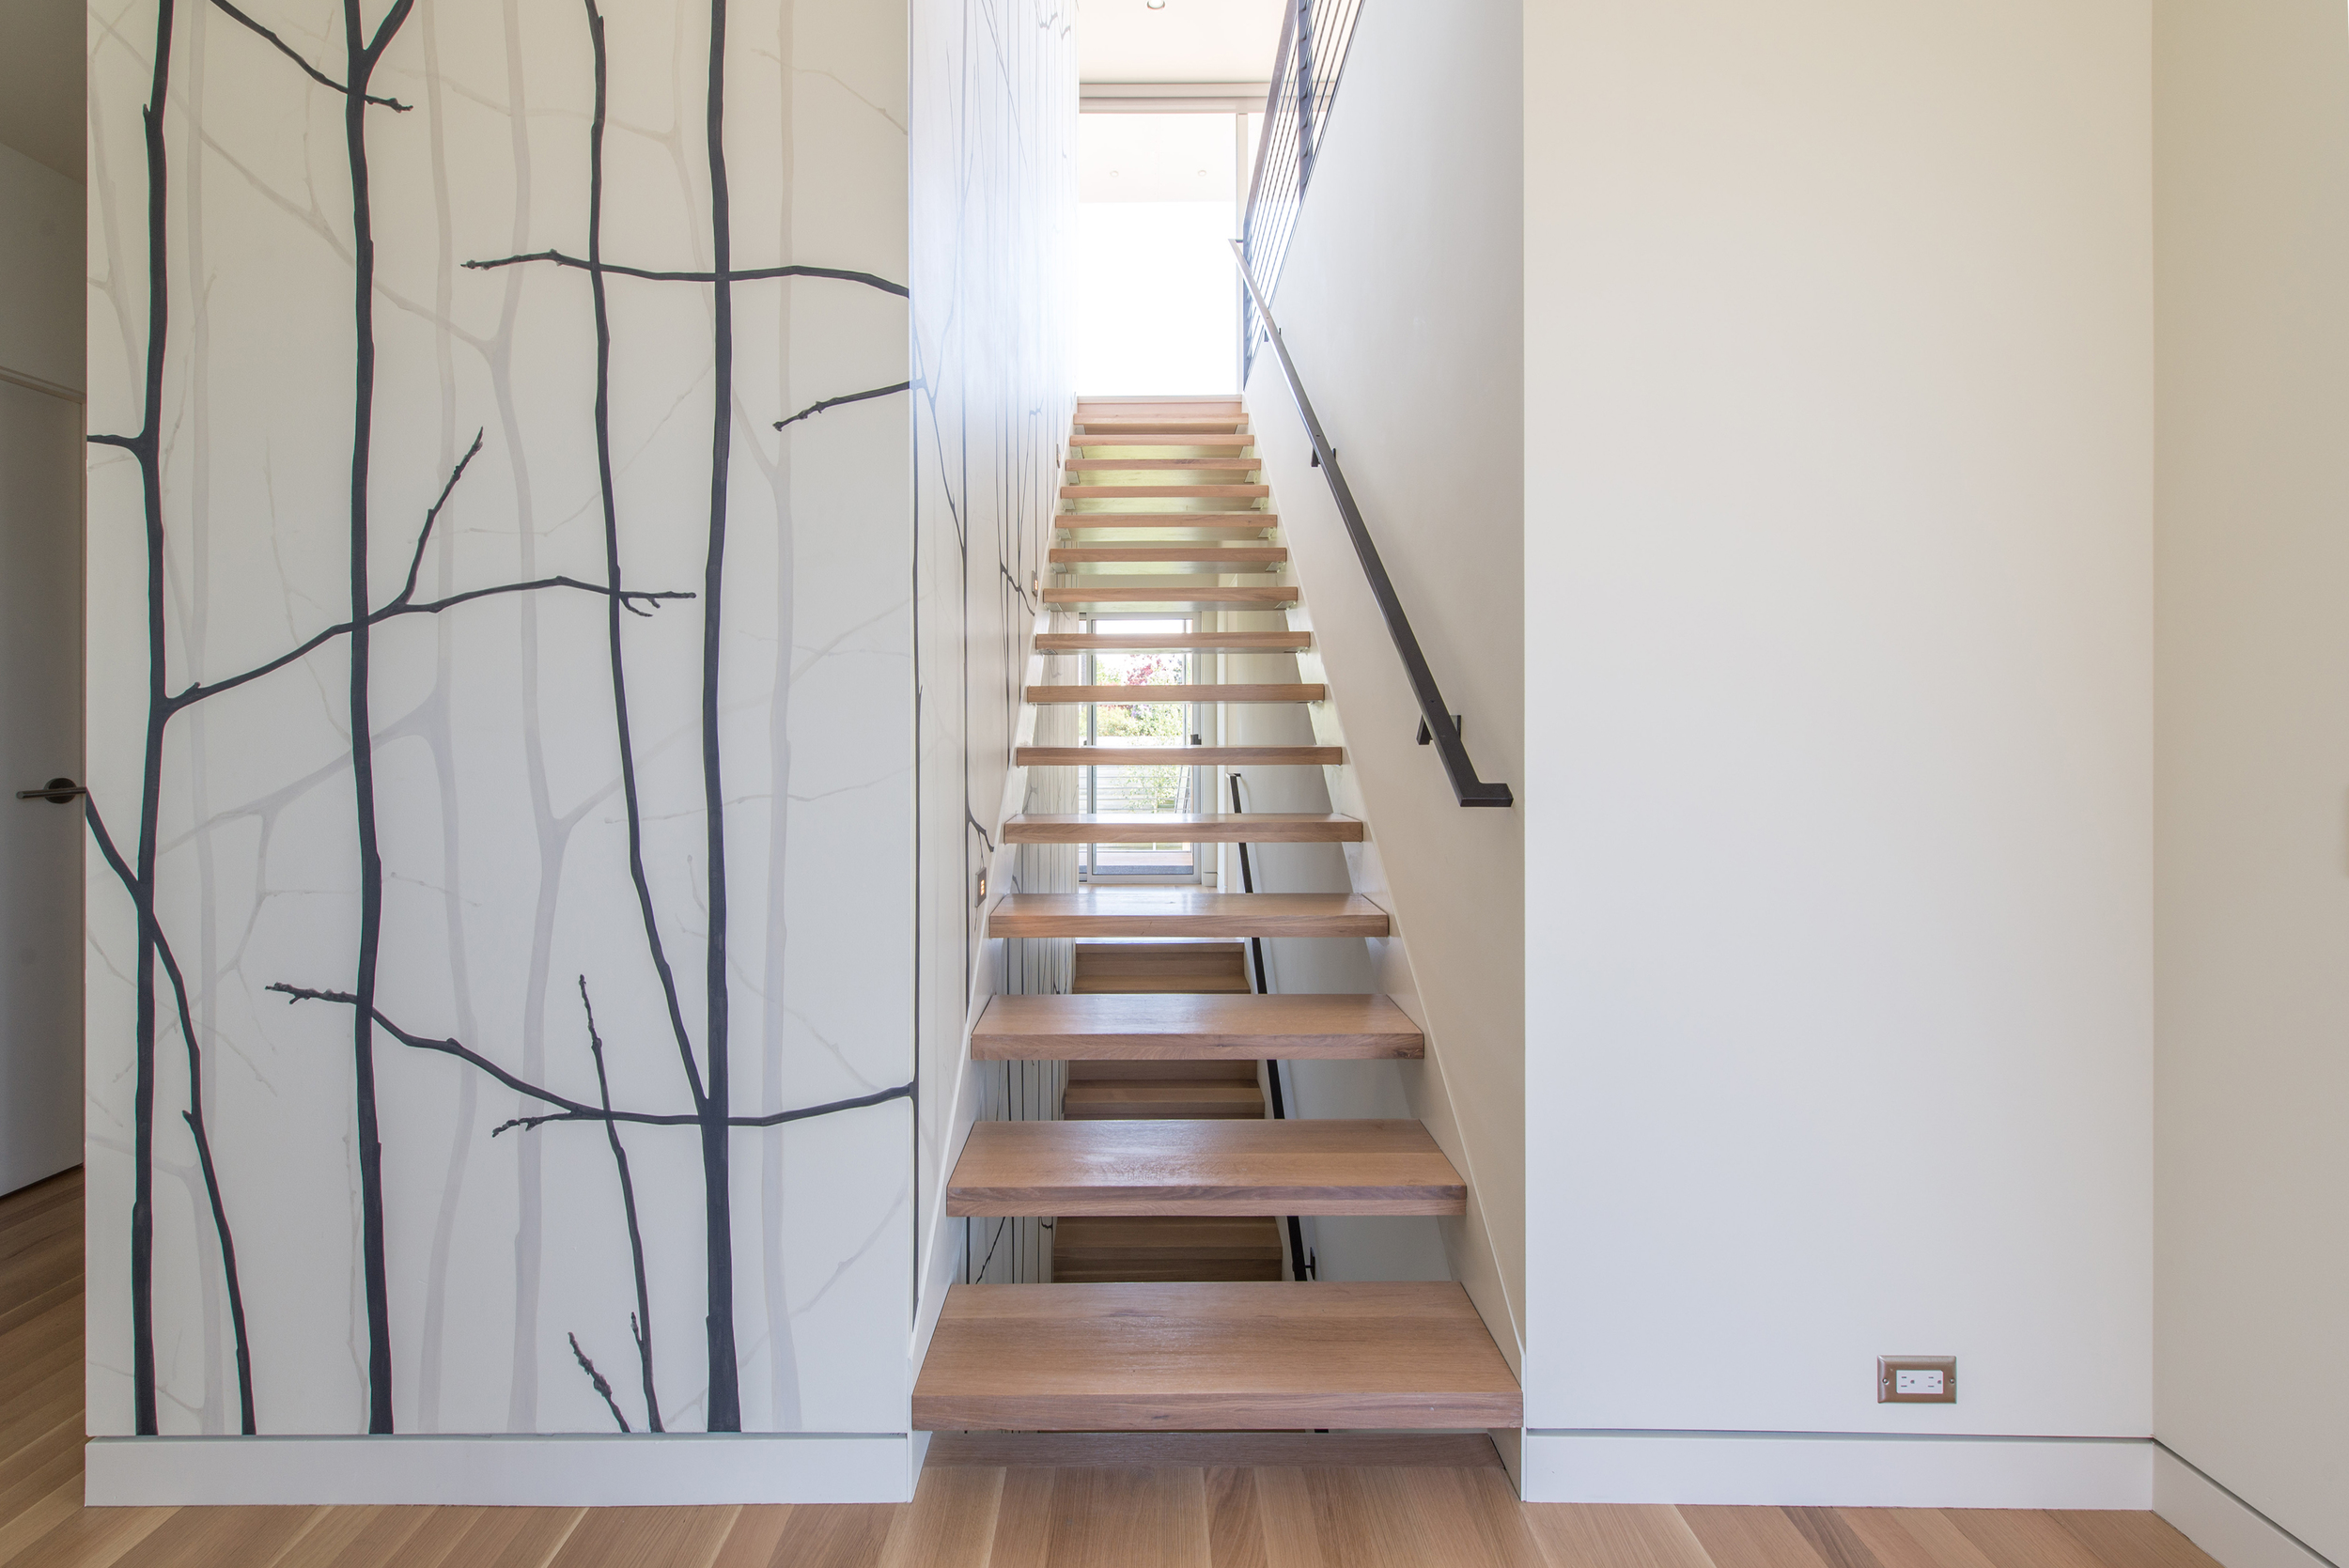 Entry on the second floor. The image continues below these stairs to the basement and above through the kitchen to the top of the rooftop staircase.Photo by Andrew van Leeuwen, BUILD LLC